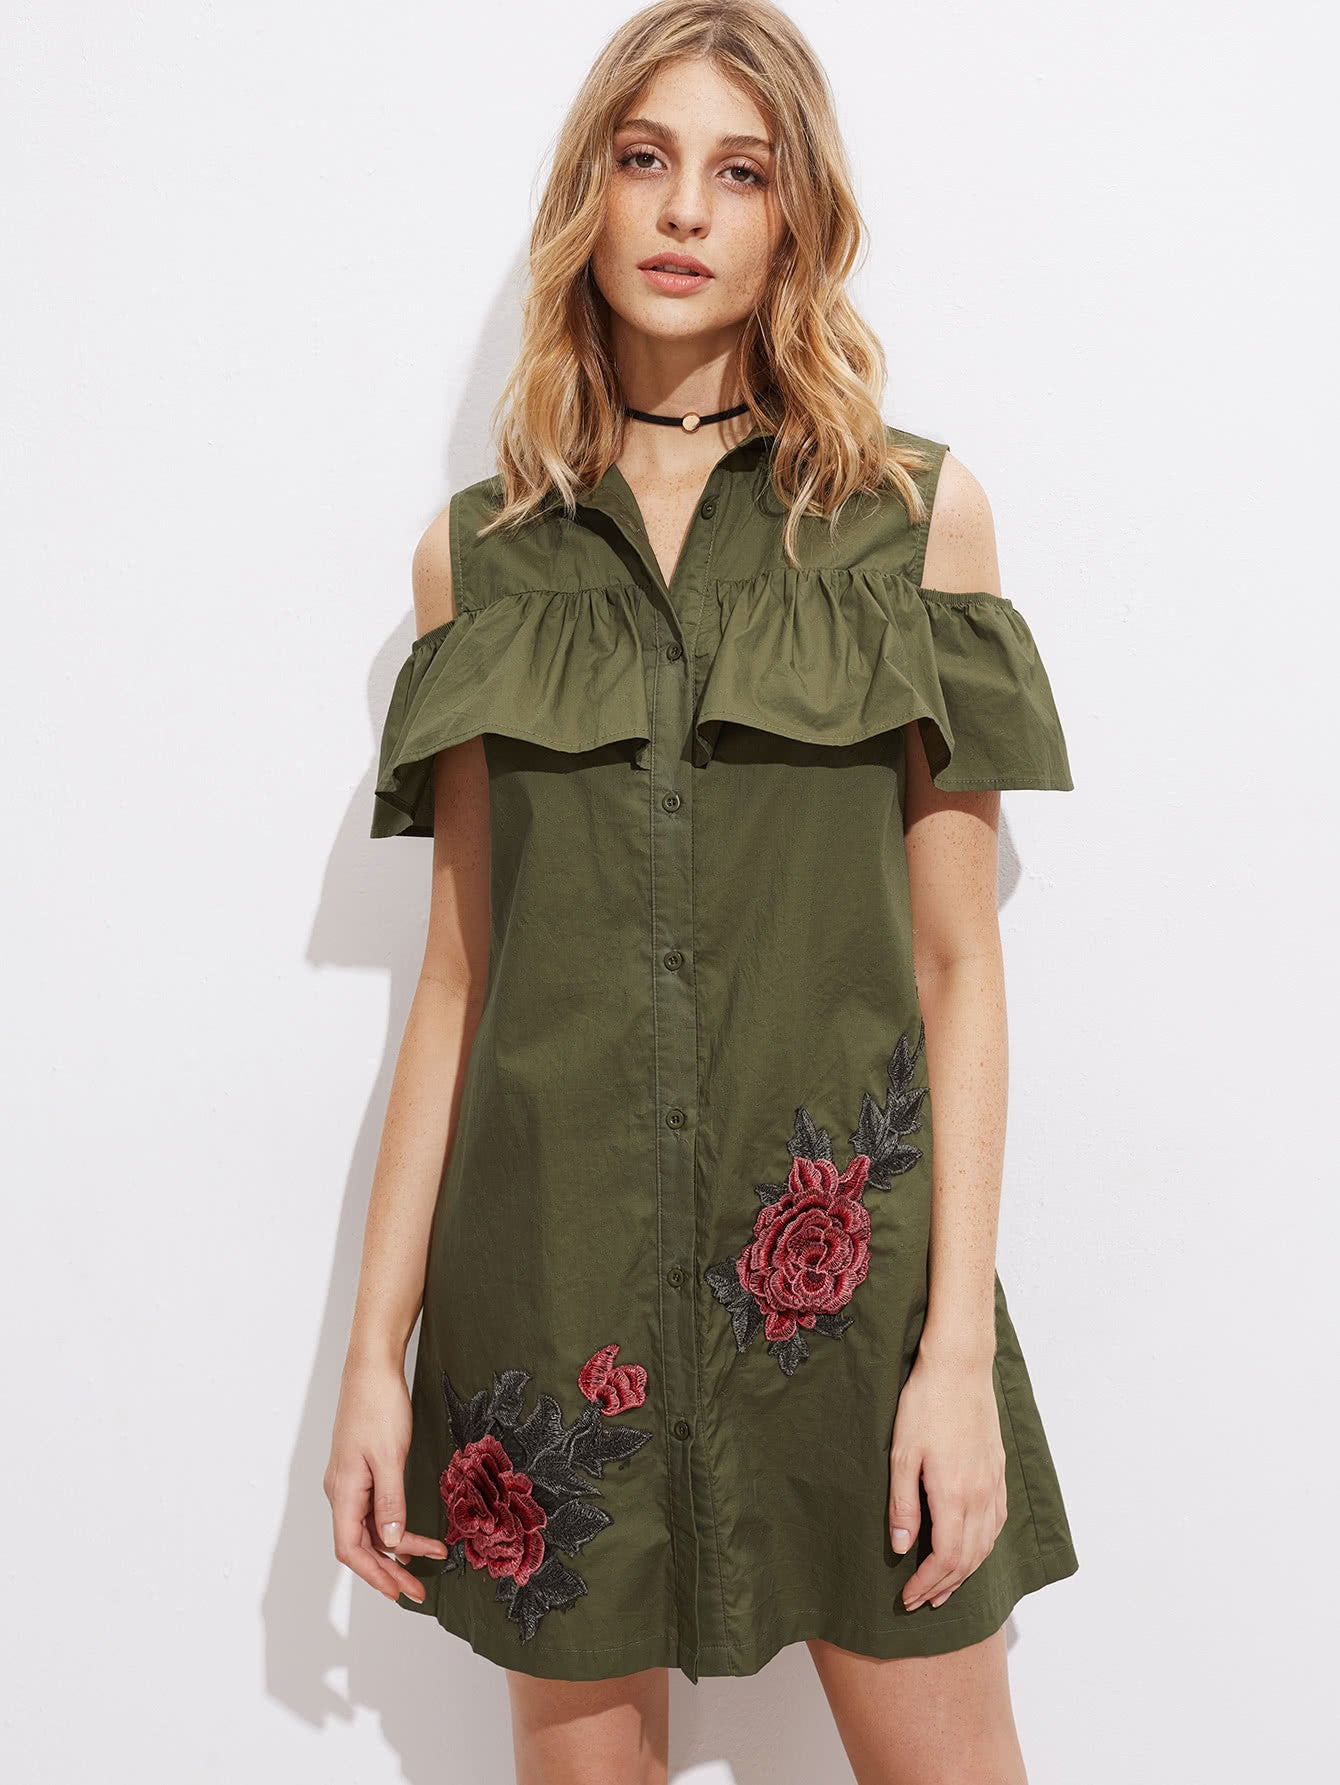 825811fcc580 Open Shoulder Shirt Dress - The Boho Chic Loft